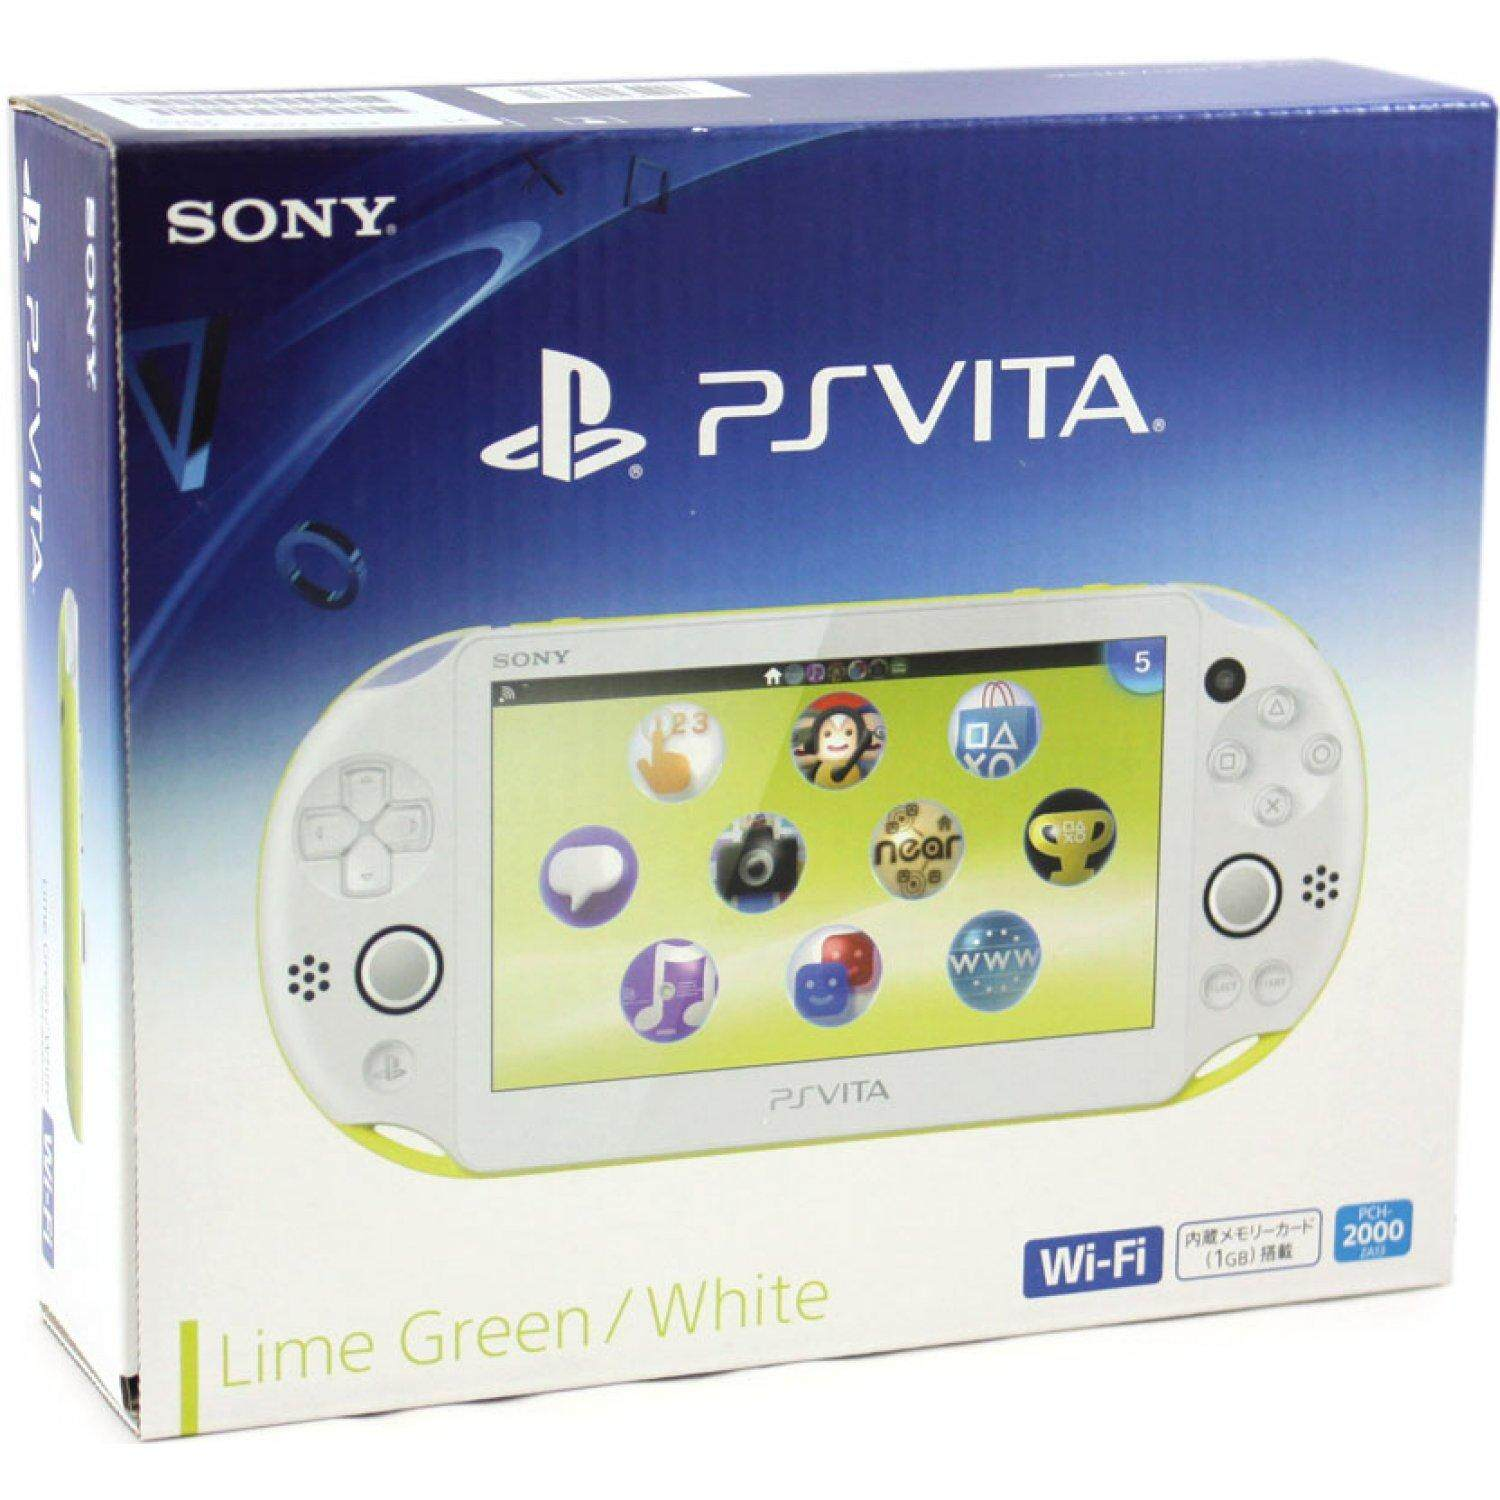 Sony PSVITA 2000 Mod(Include Game) Free 32 GB Memory Card + Accessories Full Set(LIME GREEN WHITE)